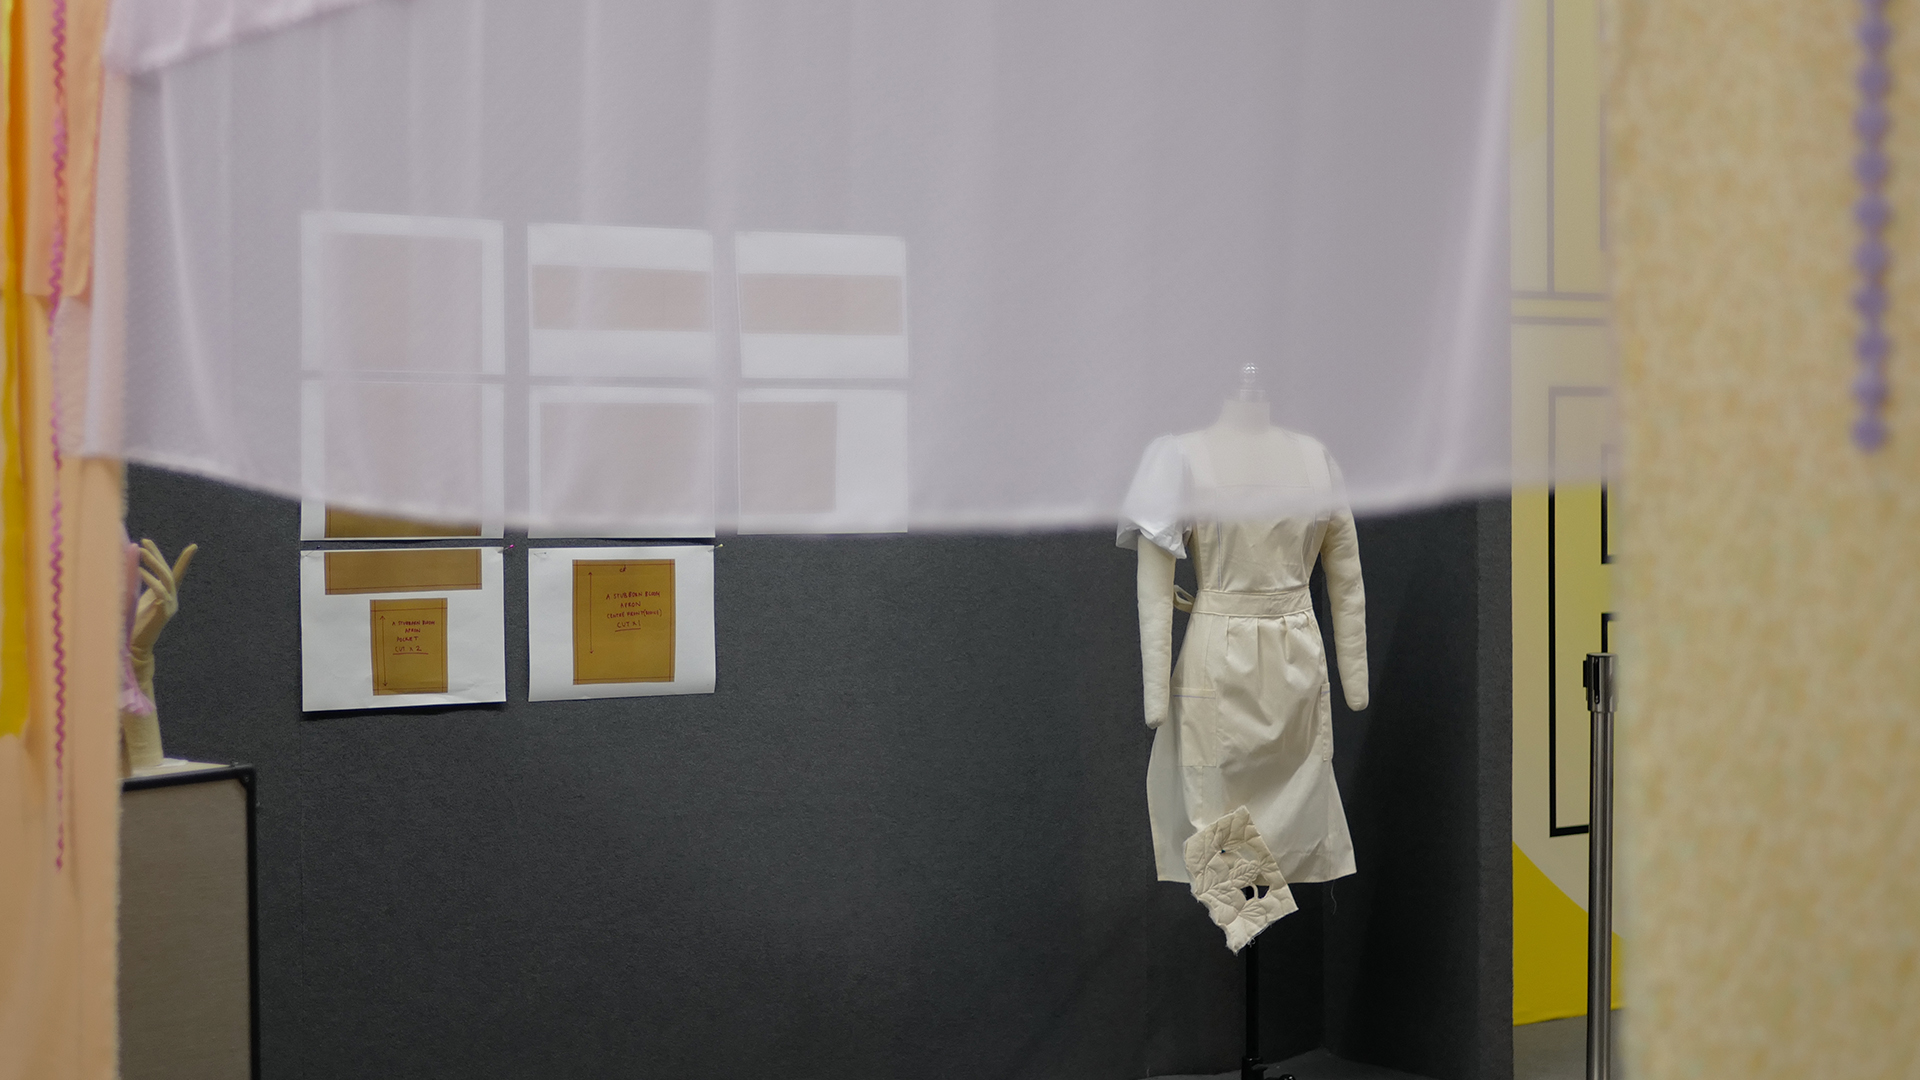 mannequin in front of wall mounted document display